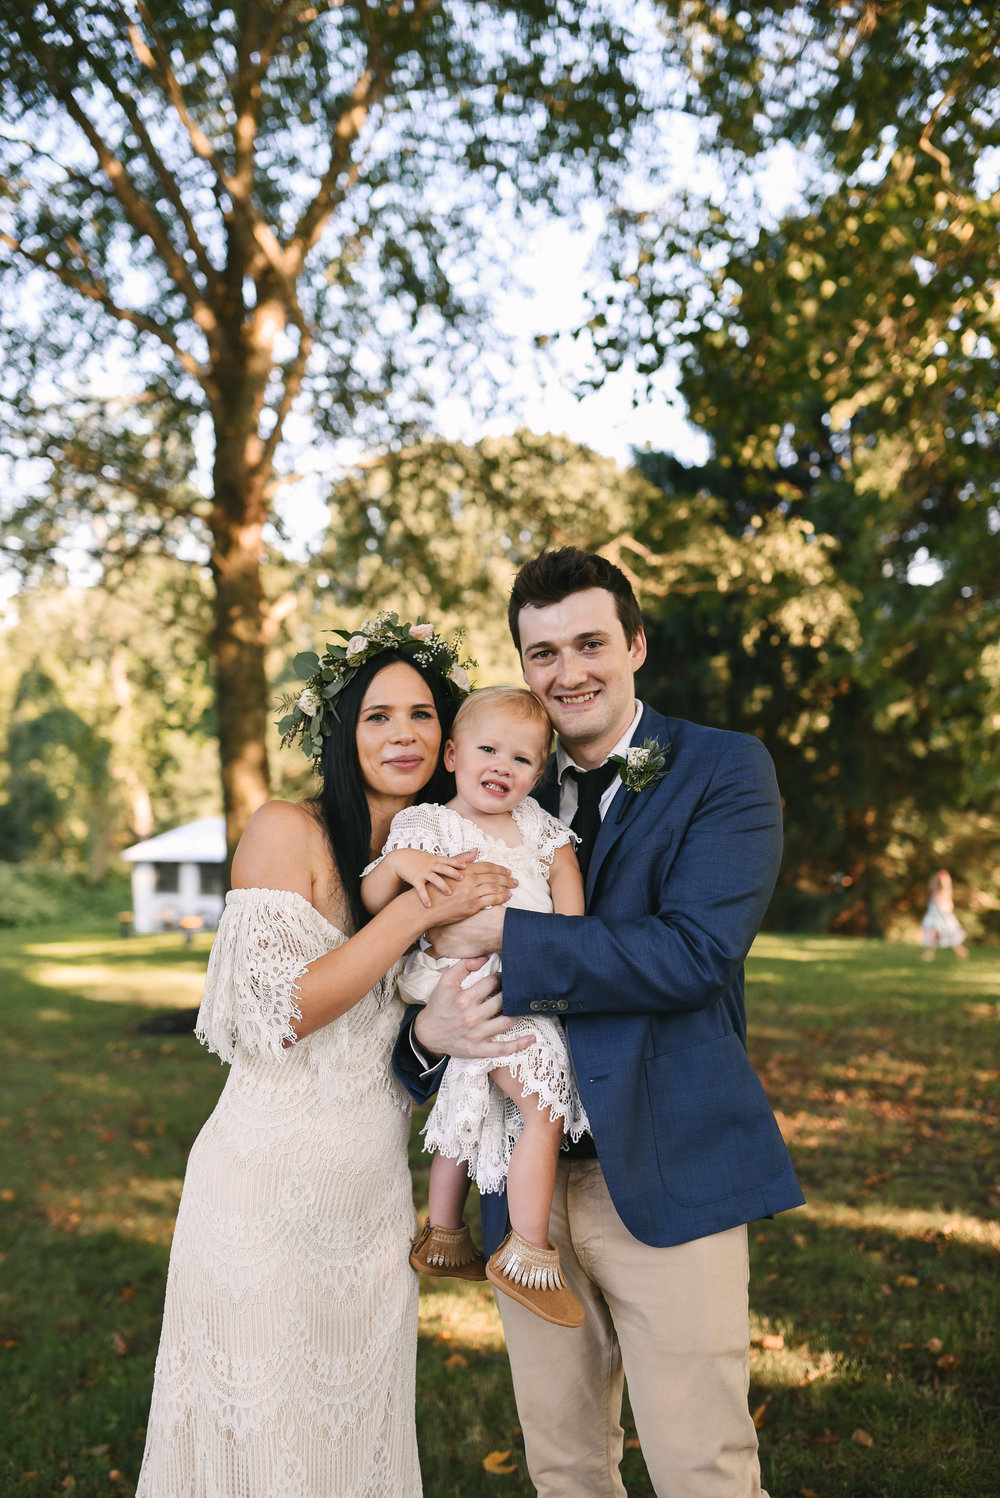 Maryland, Eastern Shore, Baltimore Wedding Photographer, Romantic, Boho, Backyard Wedding, Nature, Bride and Groom Holding Little Girl in Lace Dress, Flower Crown